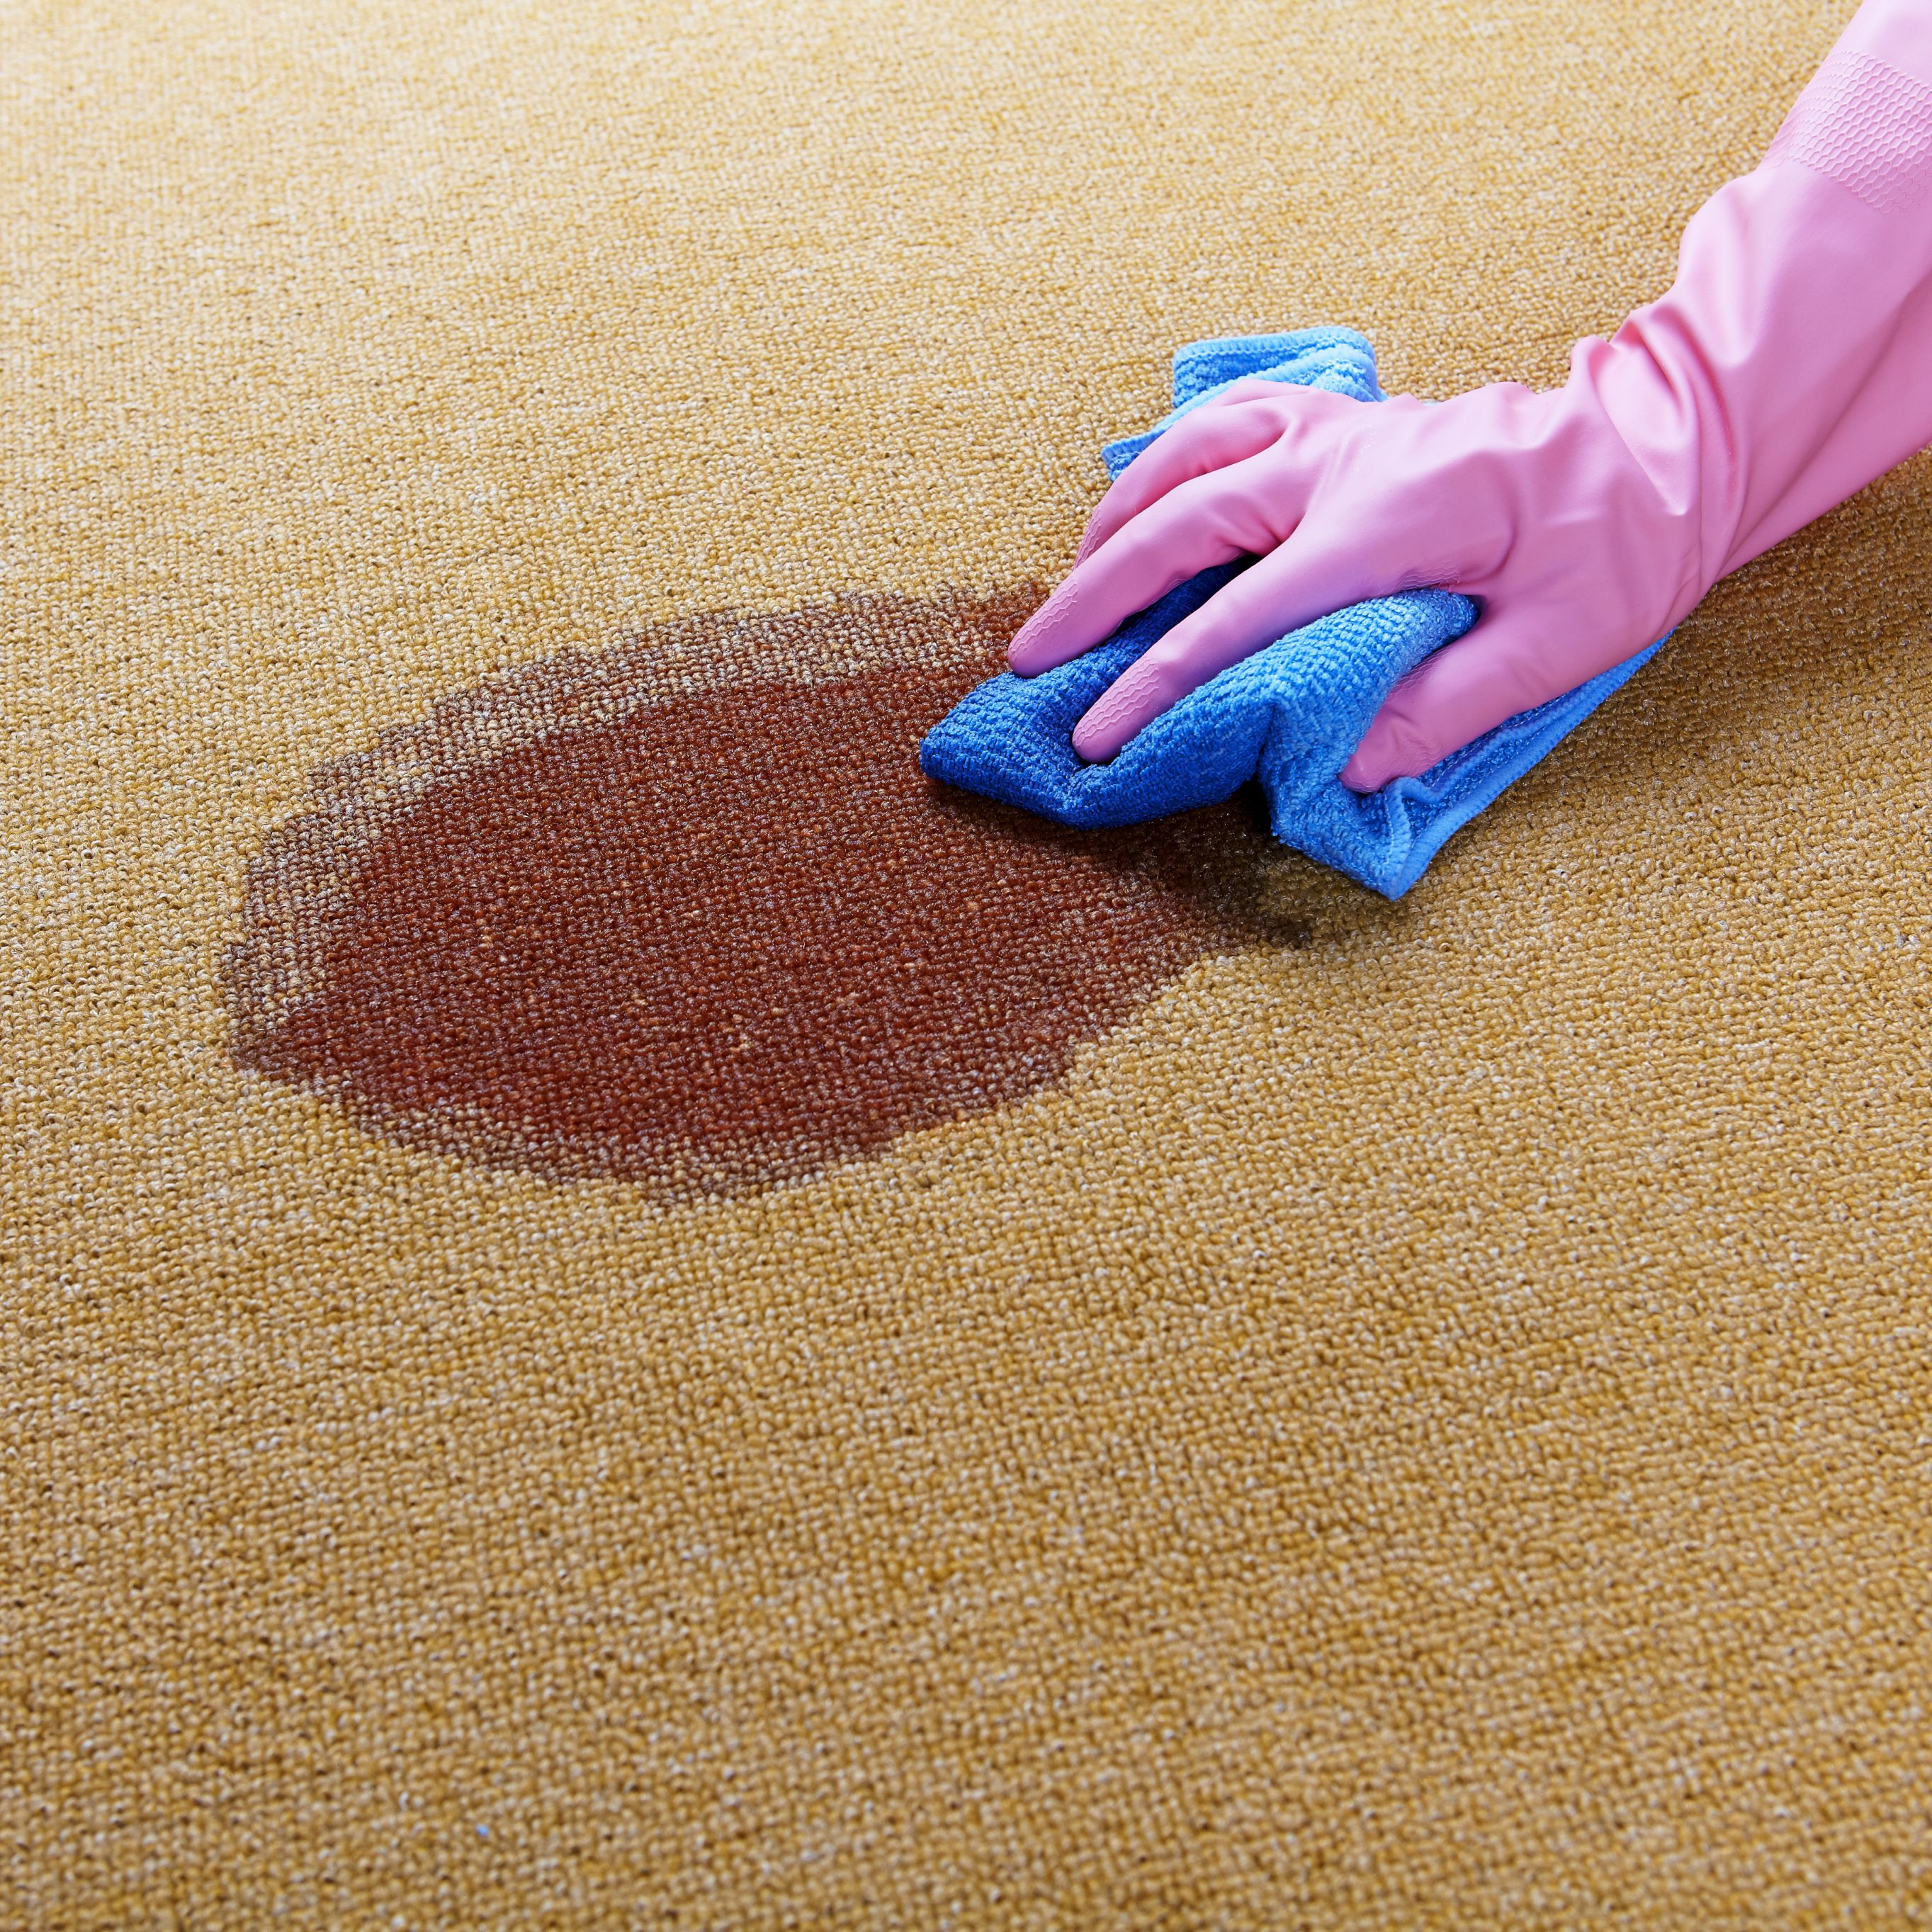 How to Remove Vomit Stains From Carpet